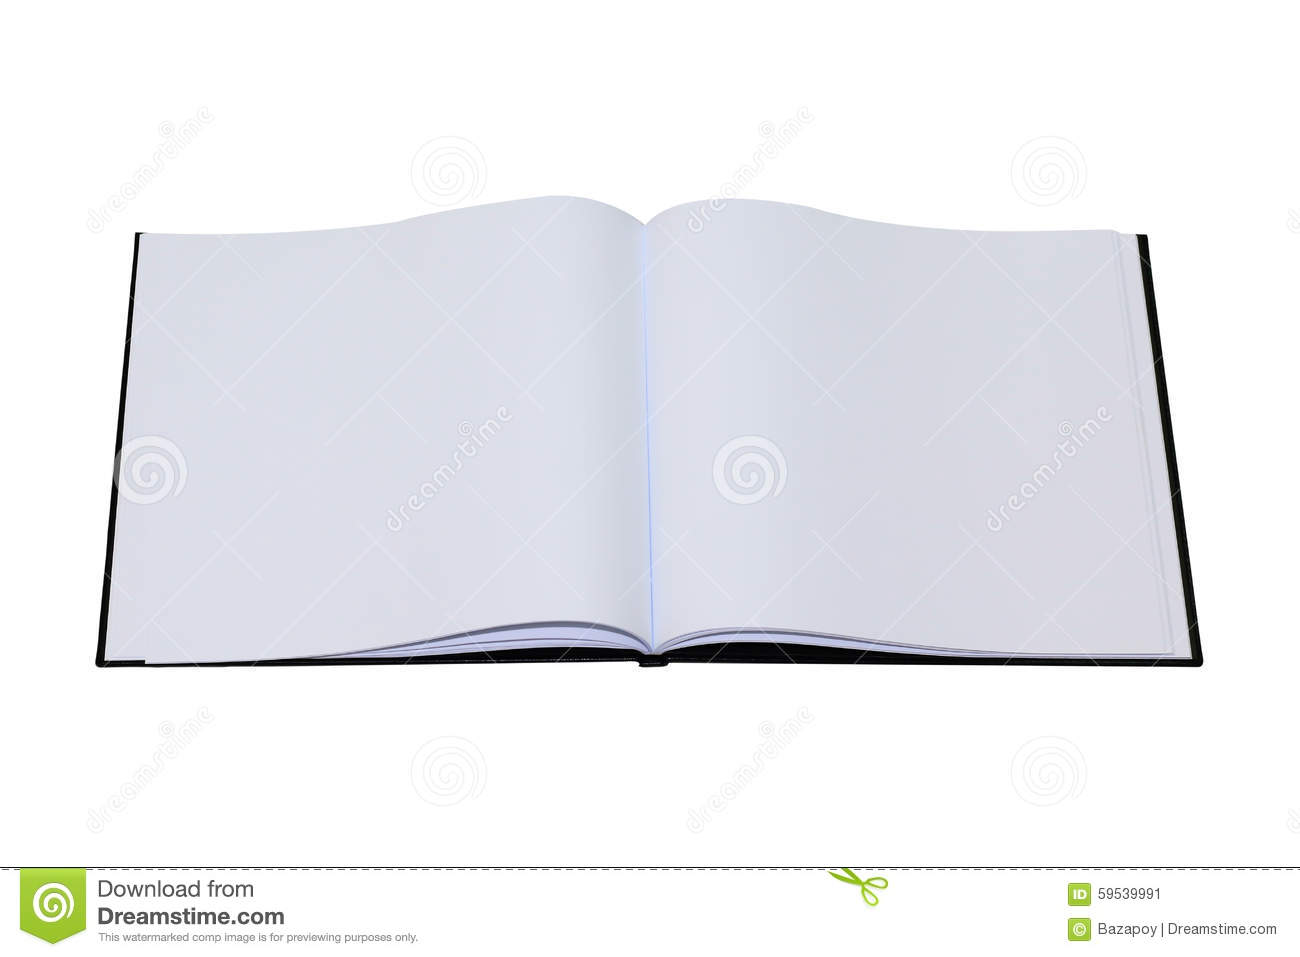 Book Cover White Background : Empty drawing book with black cover and white background